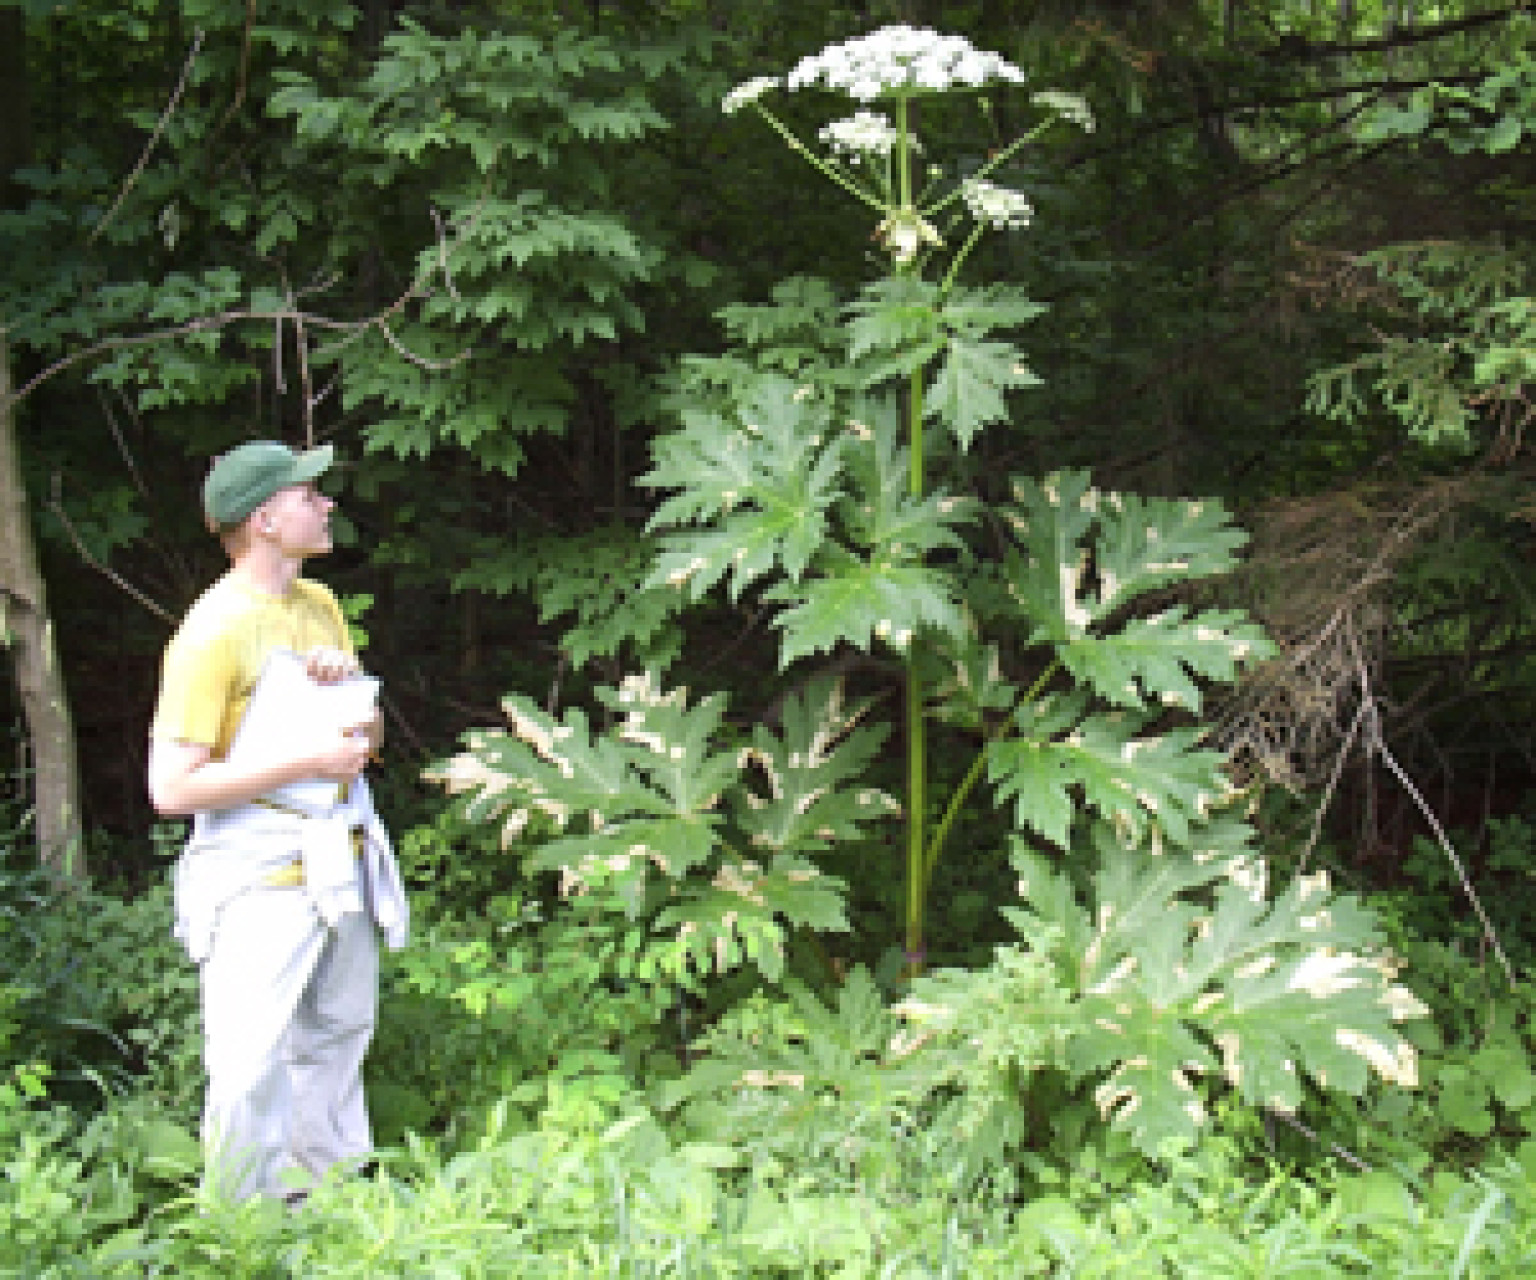 Giant Hogweed Plant May Cause Blindness Severe Skin Irritation And Scarring So Don T Touch It Huffpost